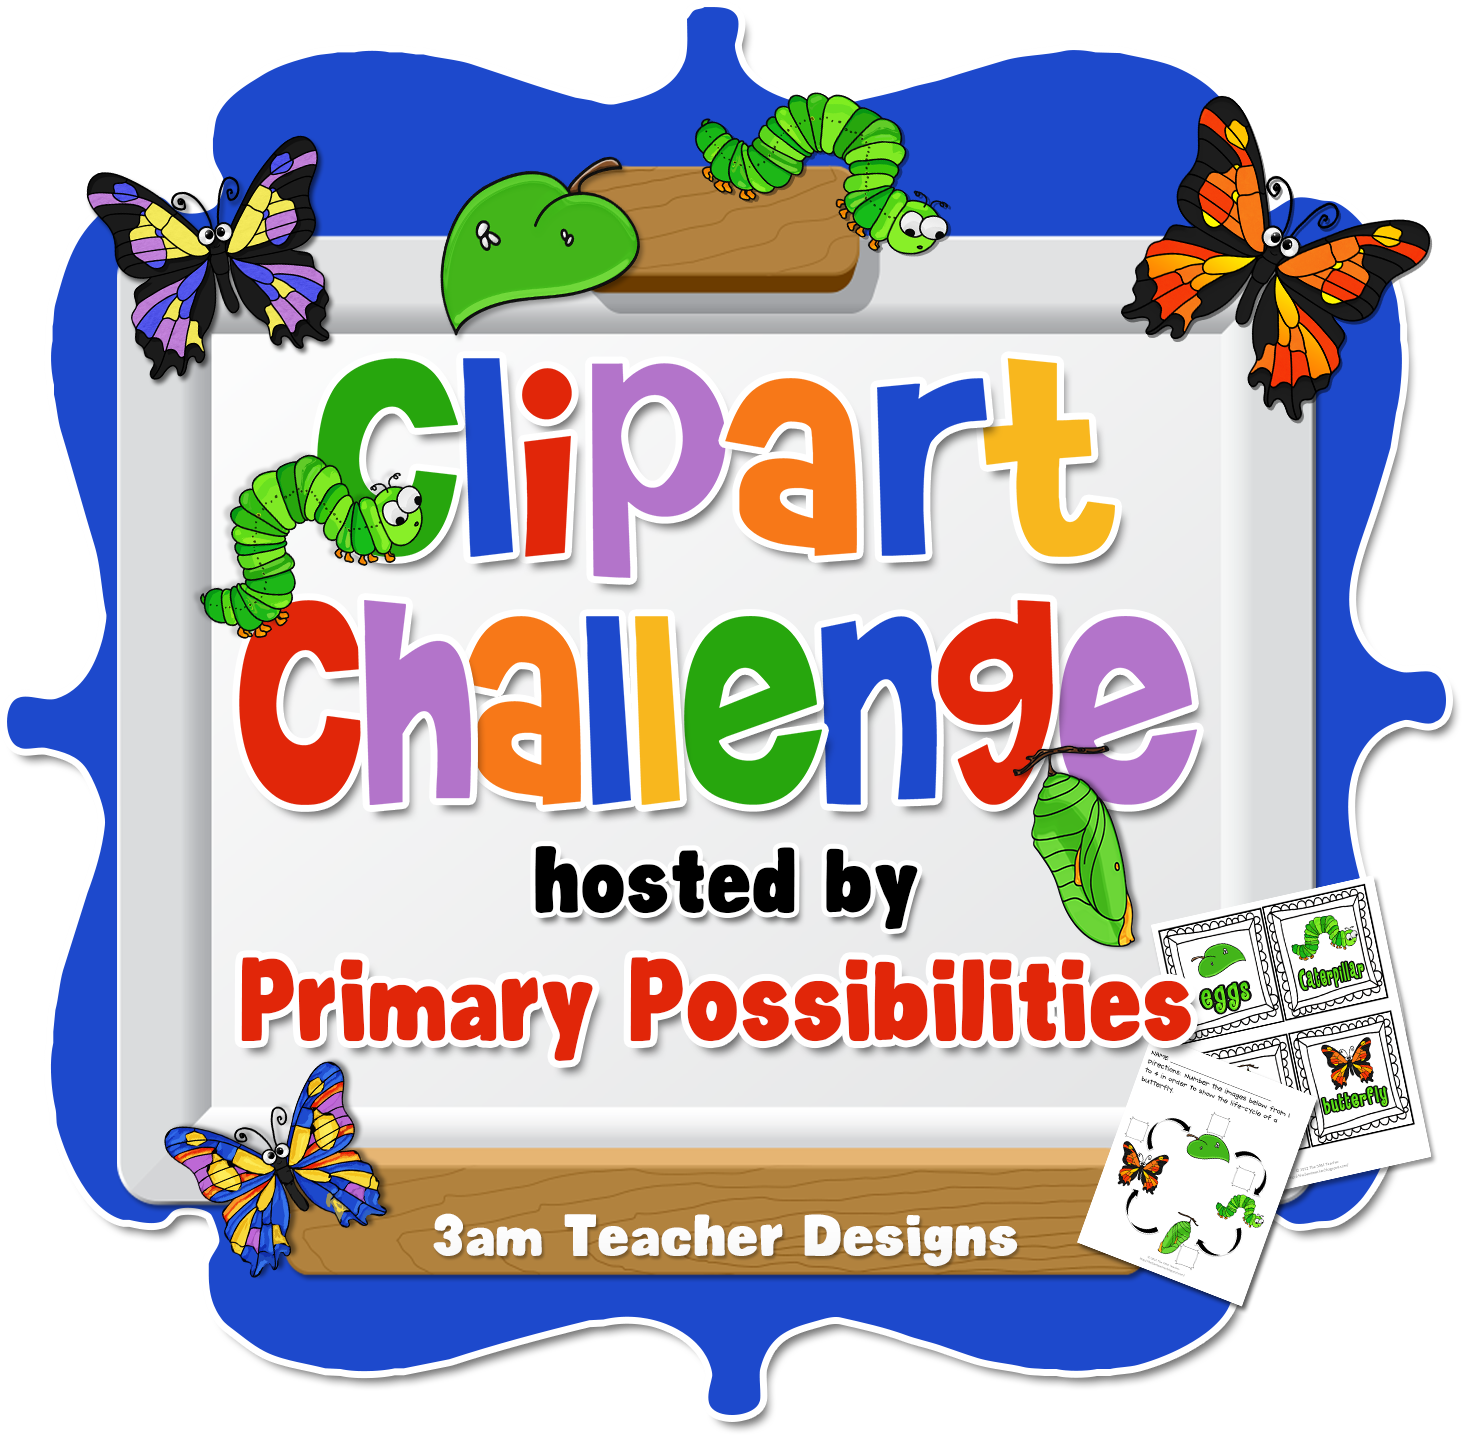 Clipart library kindergarten. Free suppose cliparts download